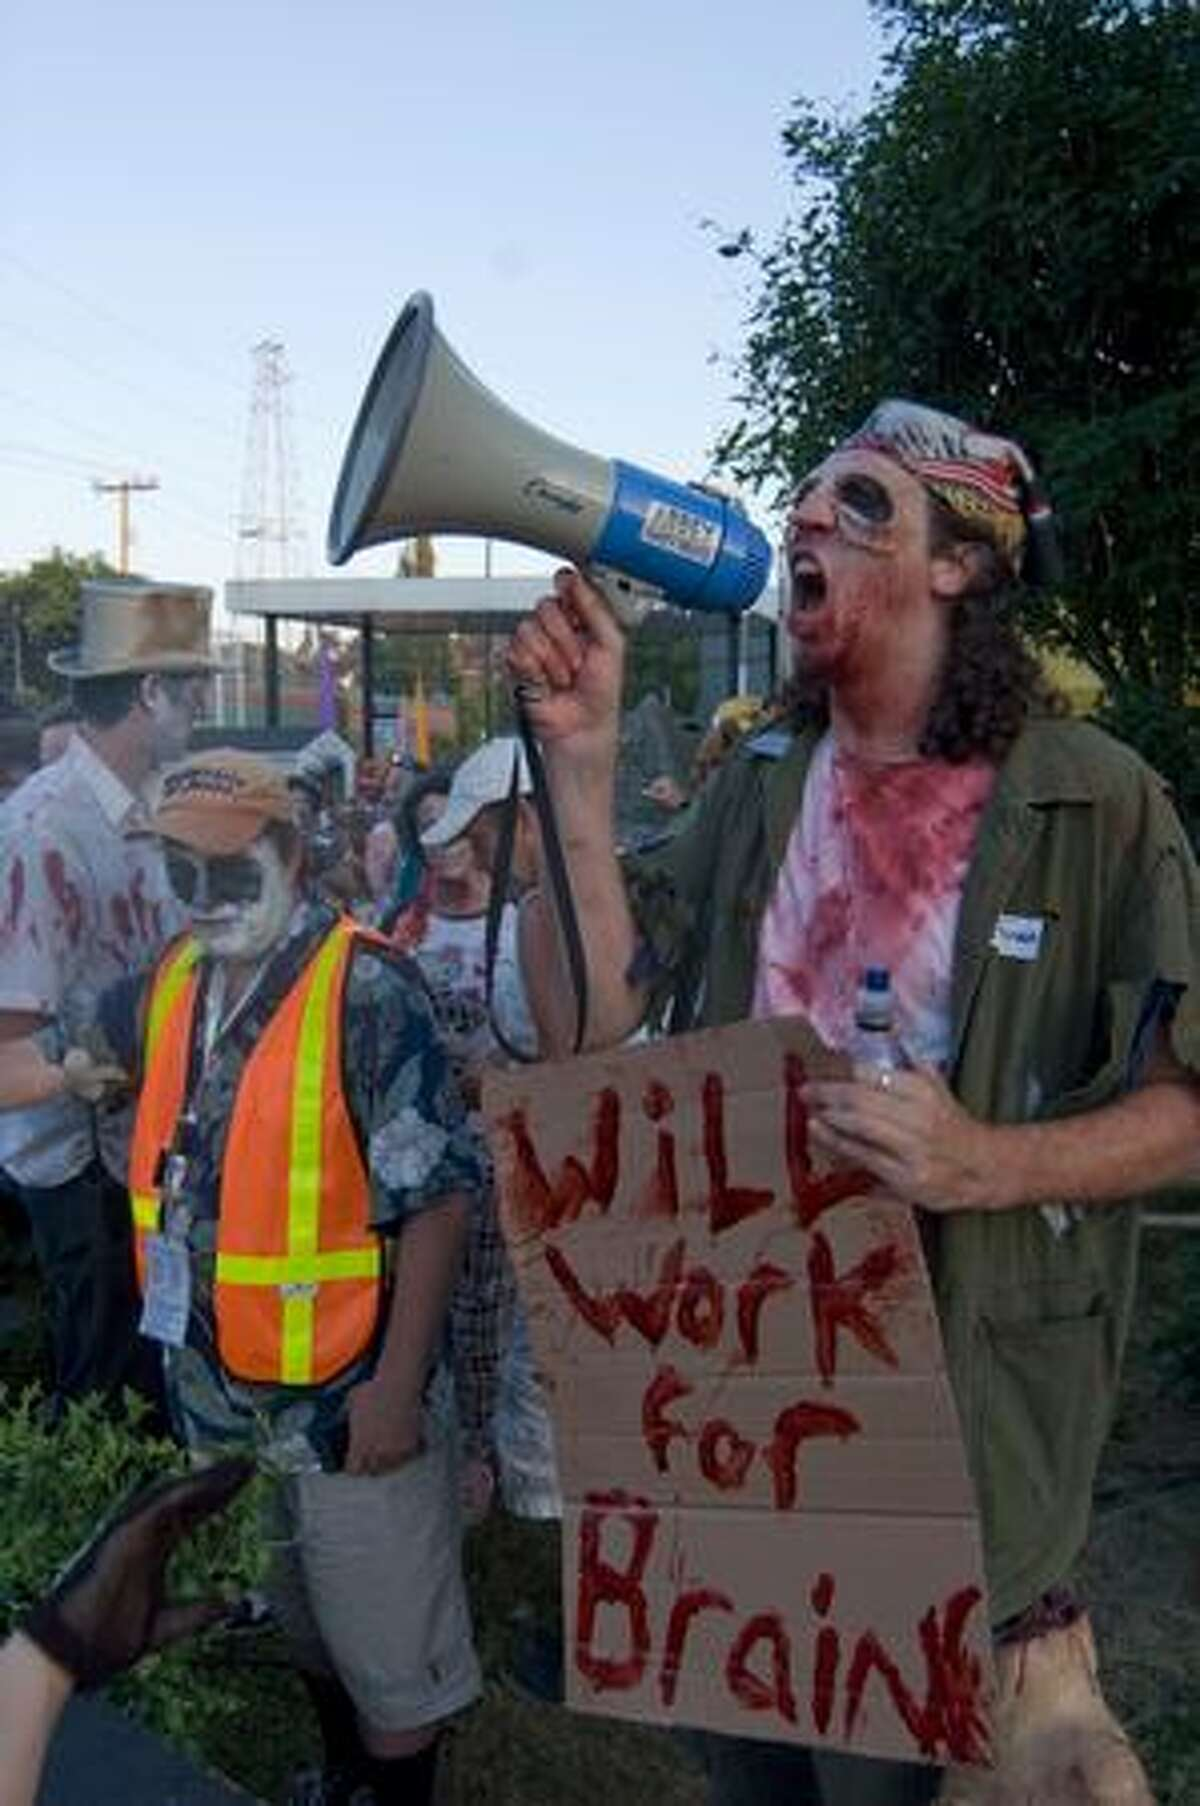 A zombie organizer shouts directives into his megaphone before the start of a Thriller dance featuring the thousands that turned out for the zombie gathering. Photo by Daniel Berman/SeattlePI.com